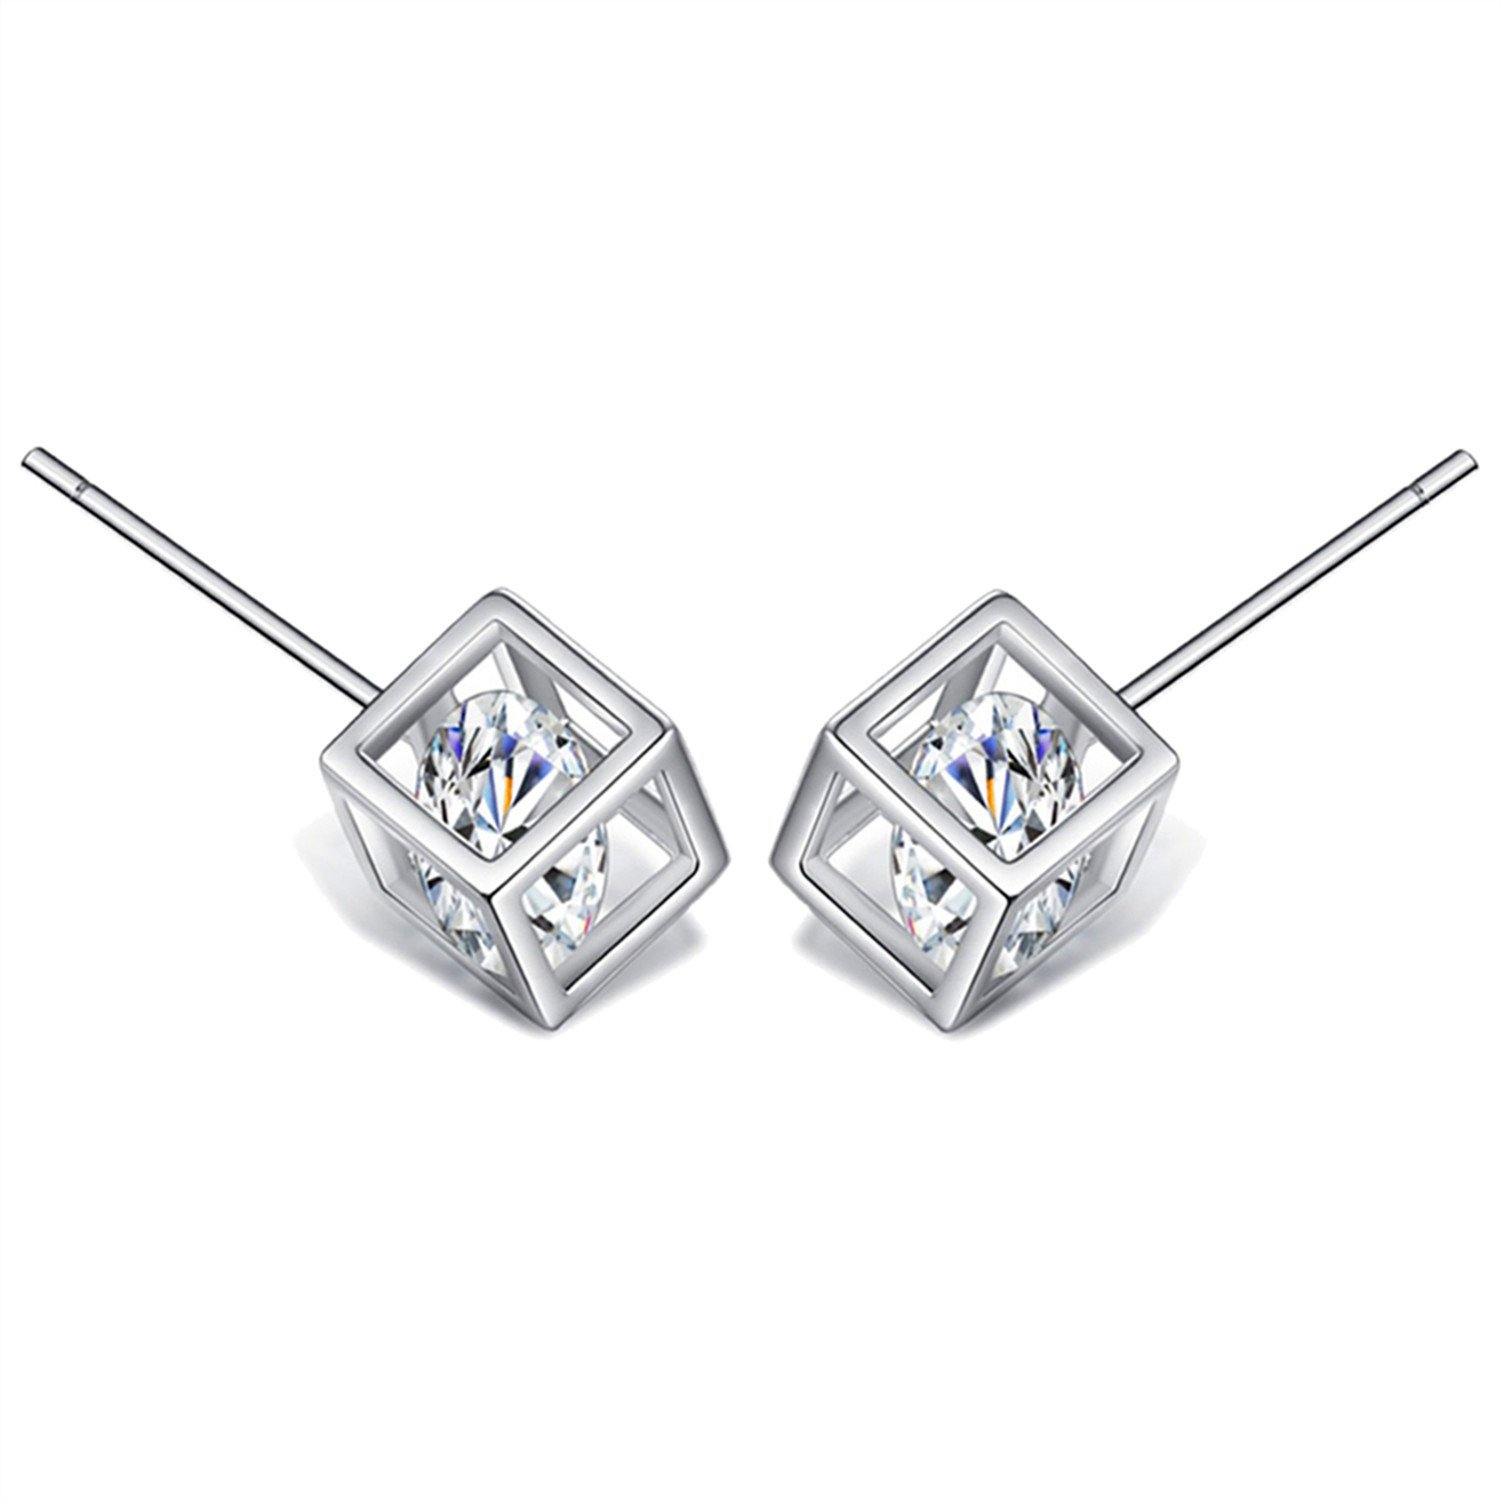 18K White Gold Plated Sterling Silver Earrings Fine Jewelry Weave Star Stud Earring xo7meK2K